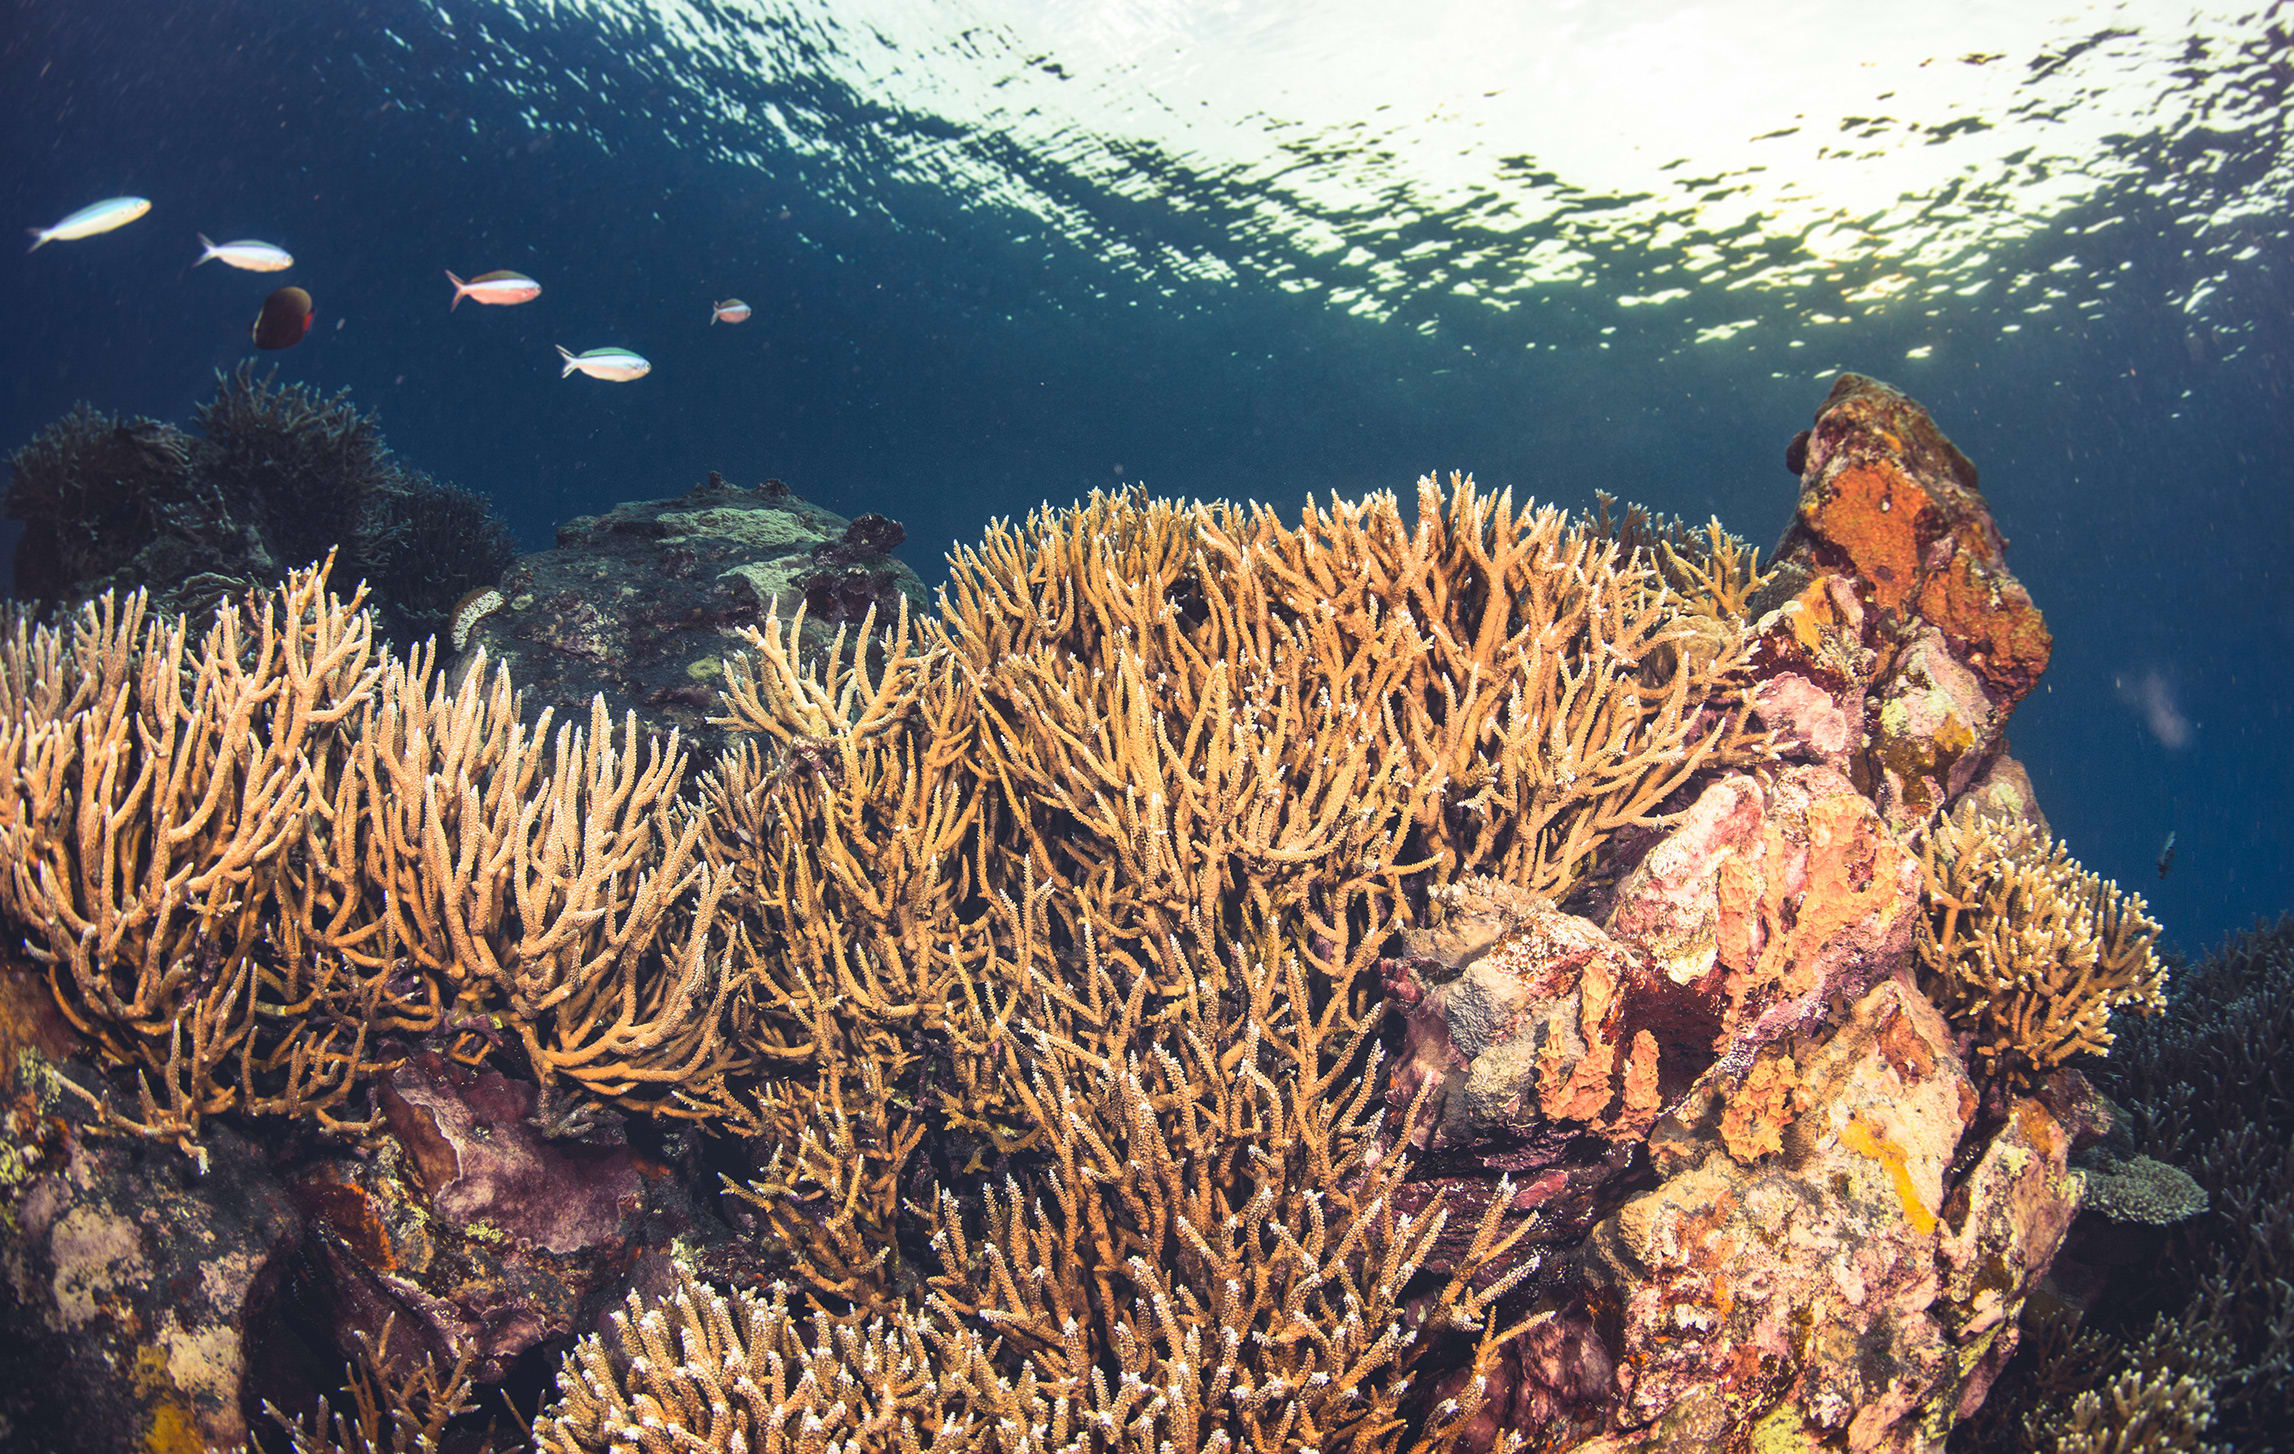 Corals need hard natural surfaces like rocks and shells to grow on, and they flourish in clear salty water with lots of sunlight. Pollution suffocates and kills them.